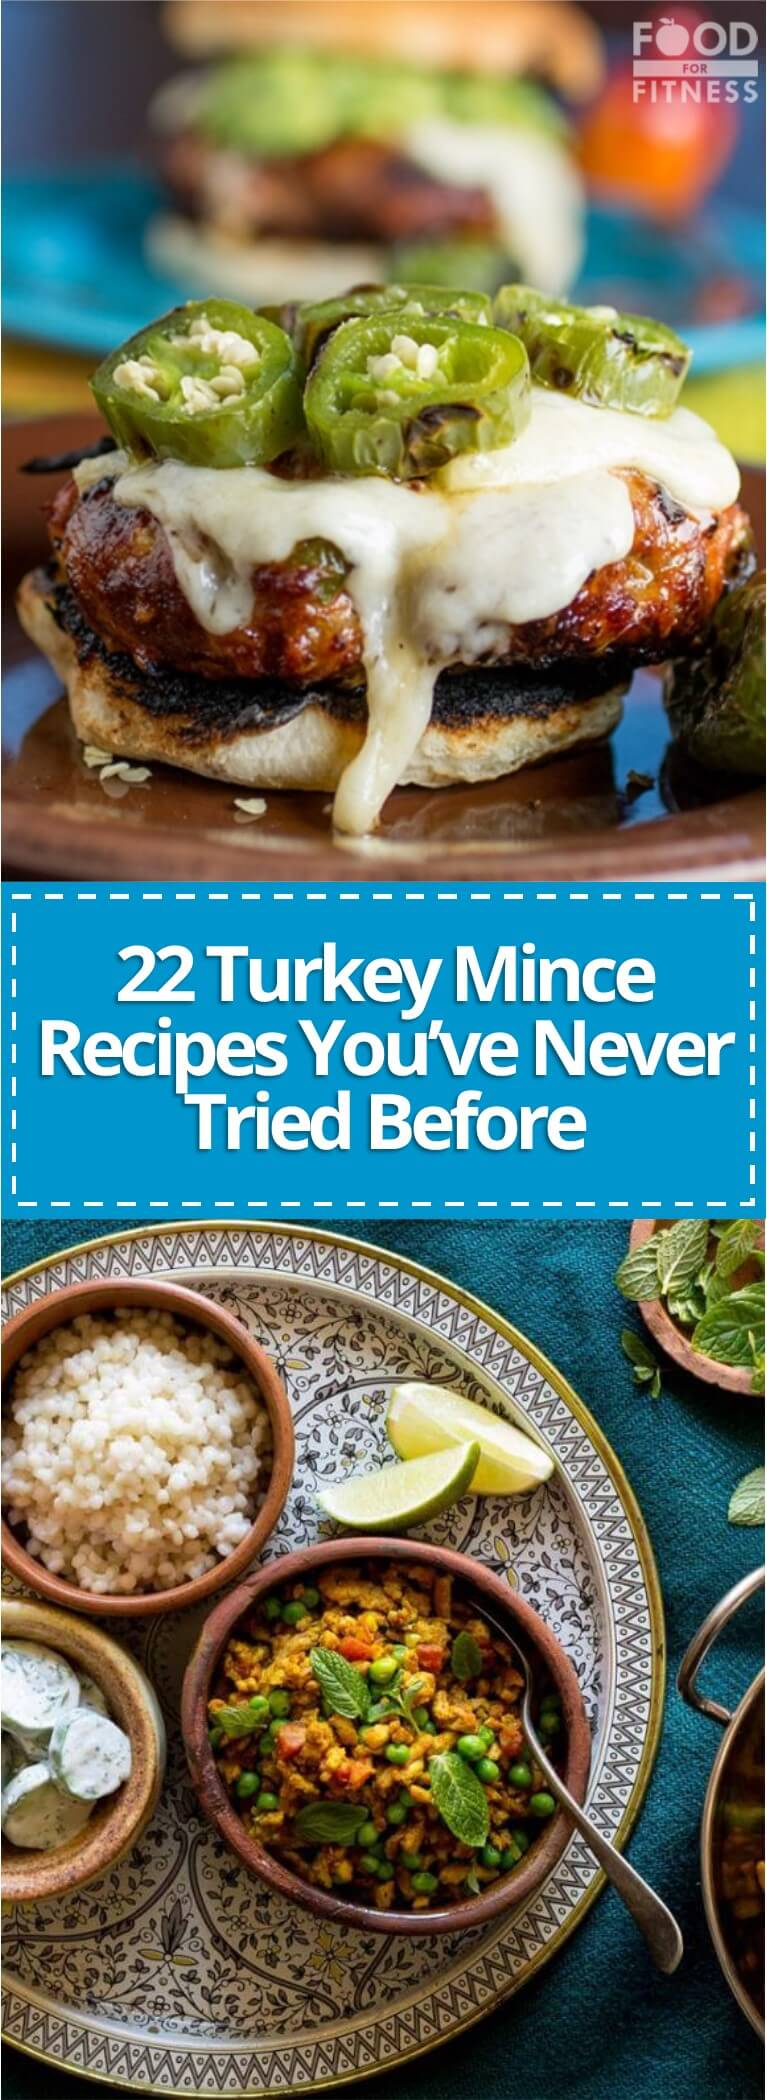 22 Delicious Turkey Mince Recipes You've Never Tried Before